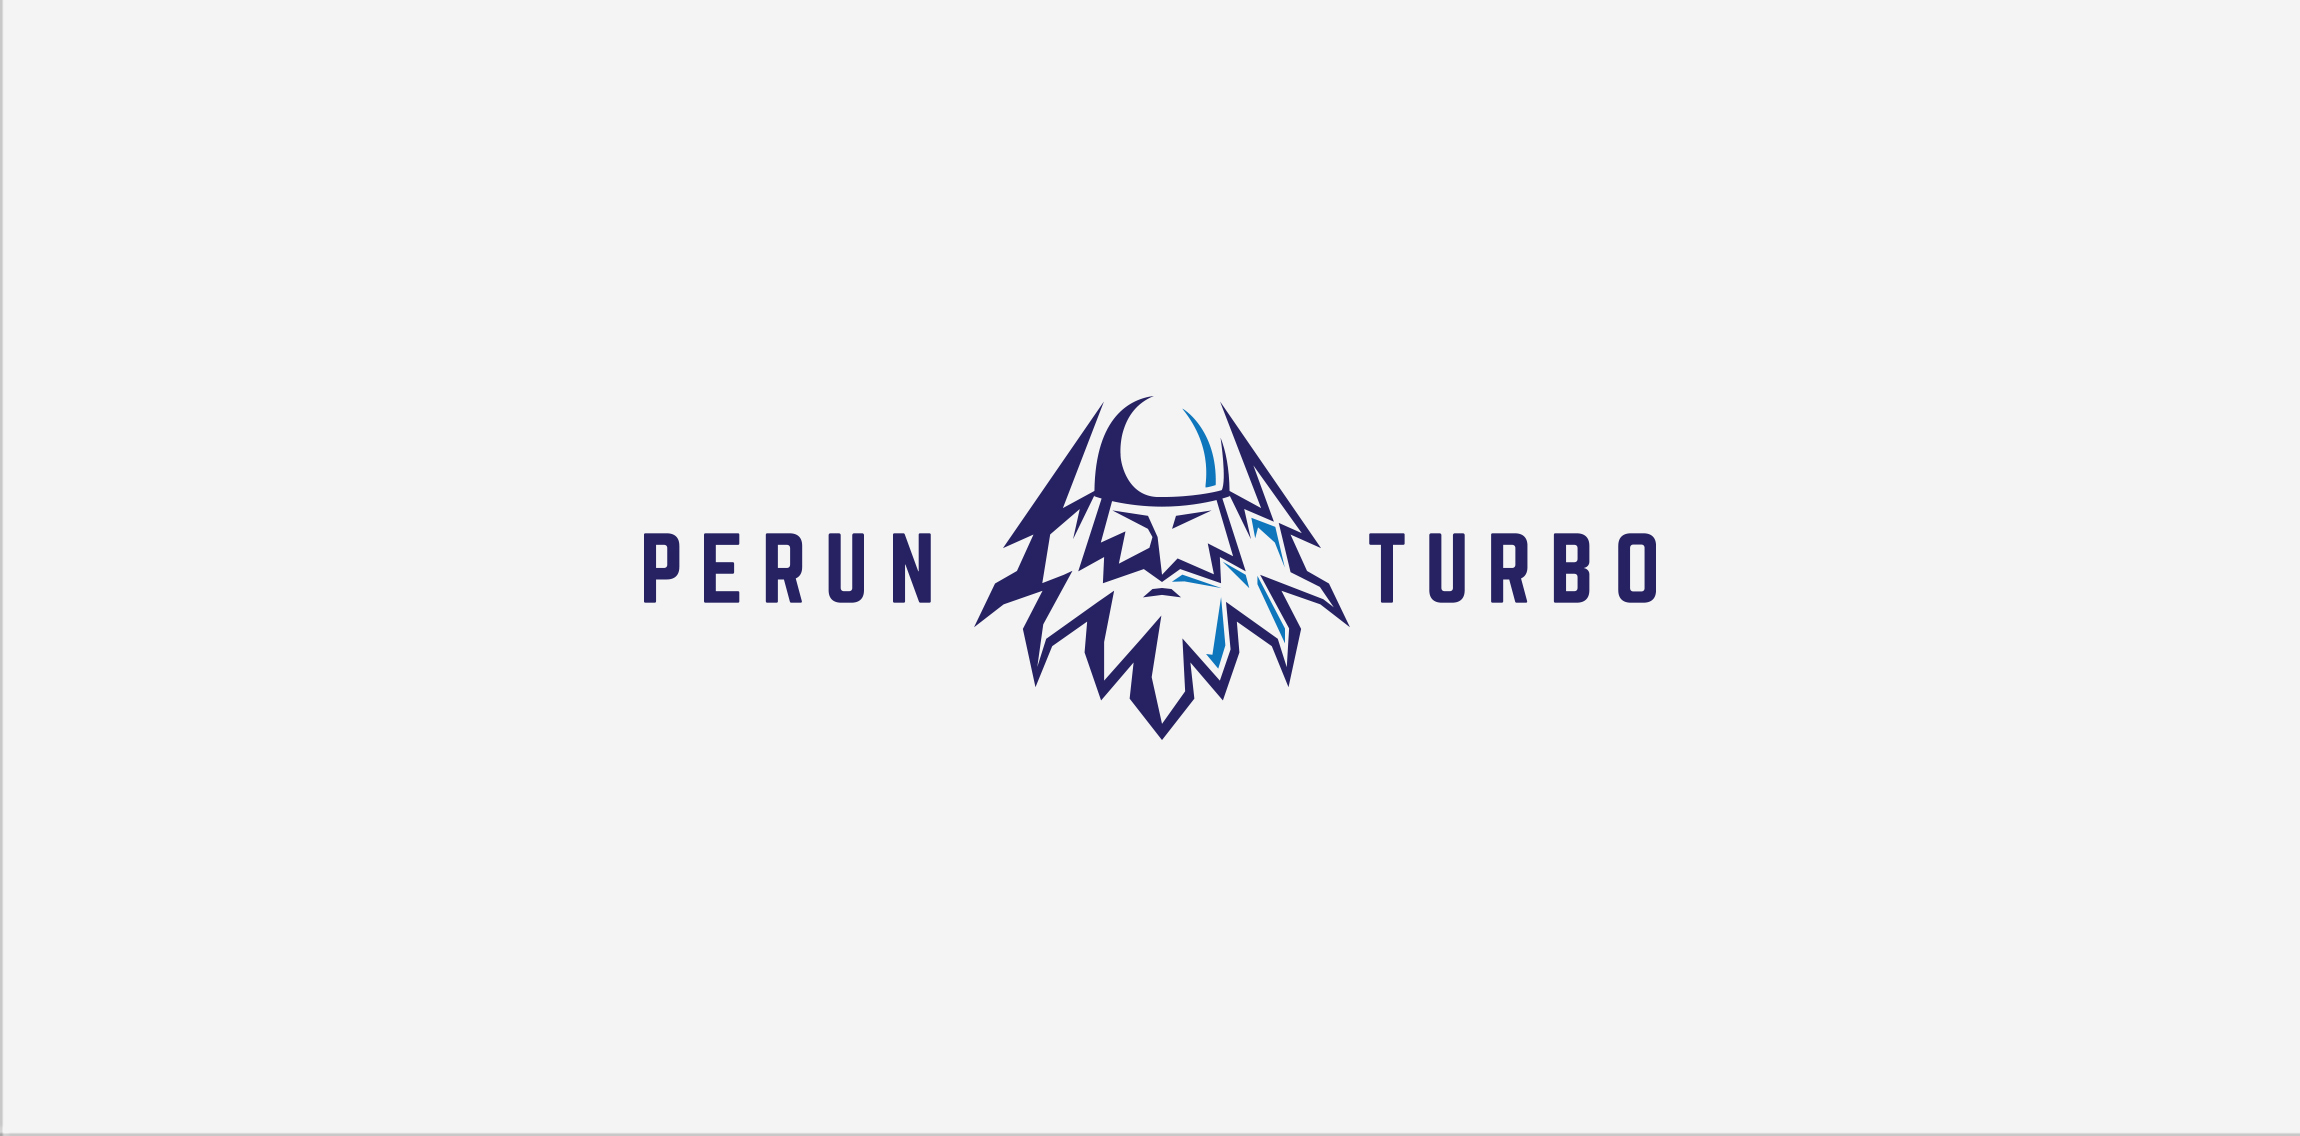 Perun Turbo